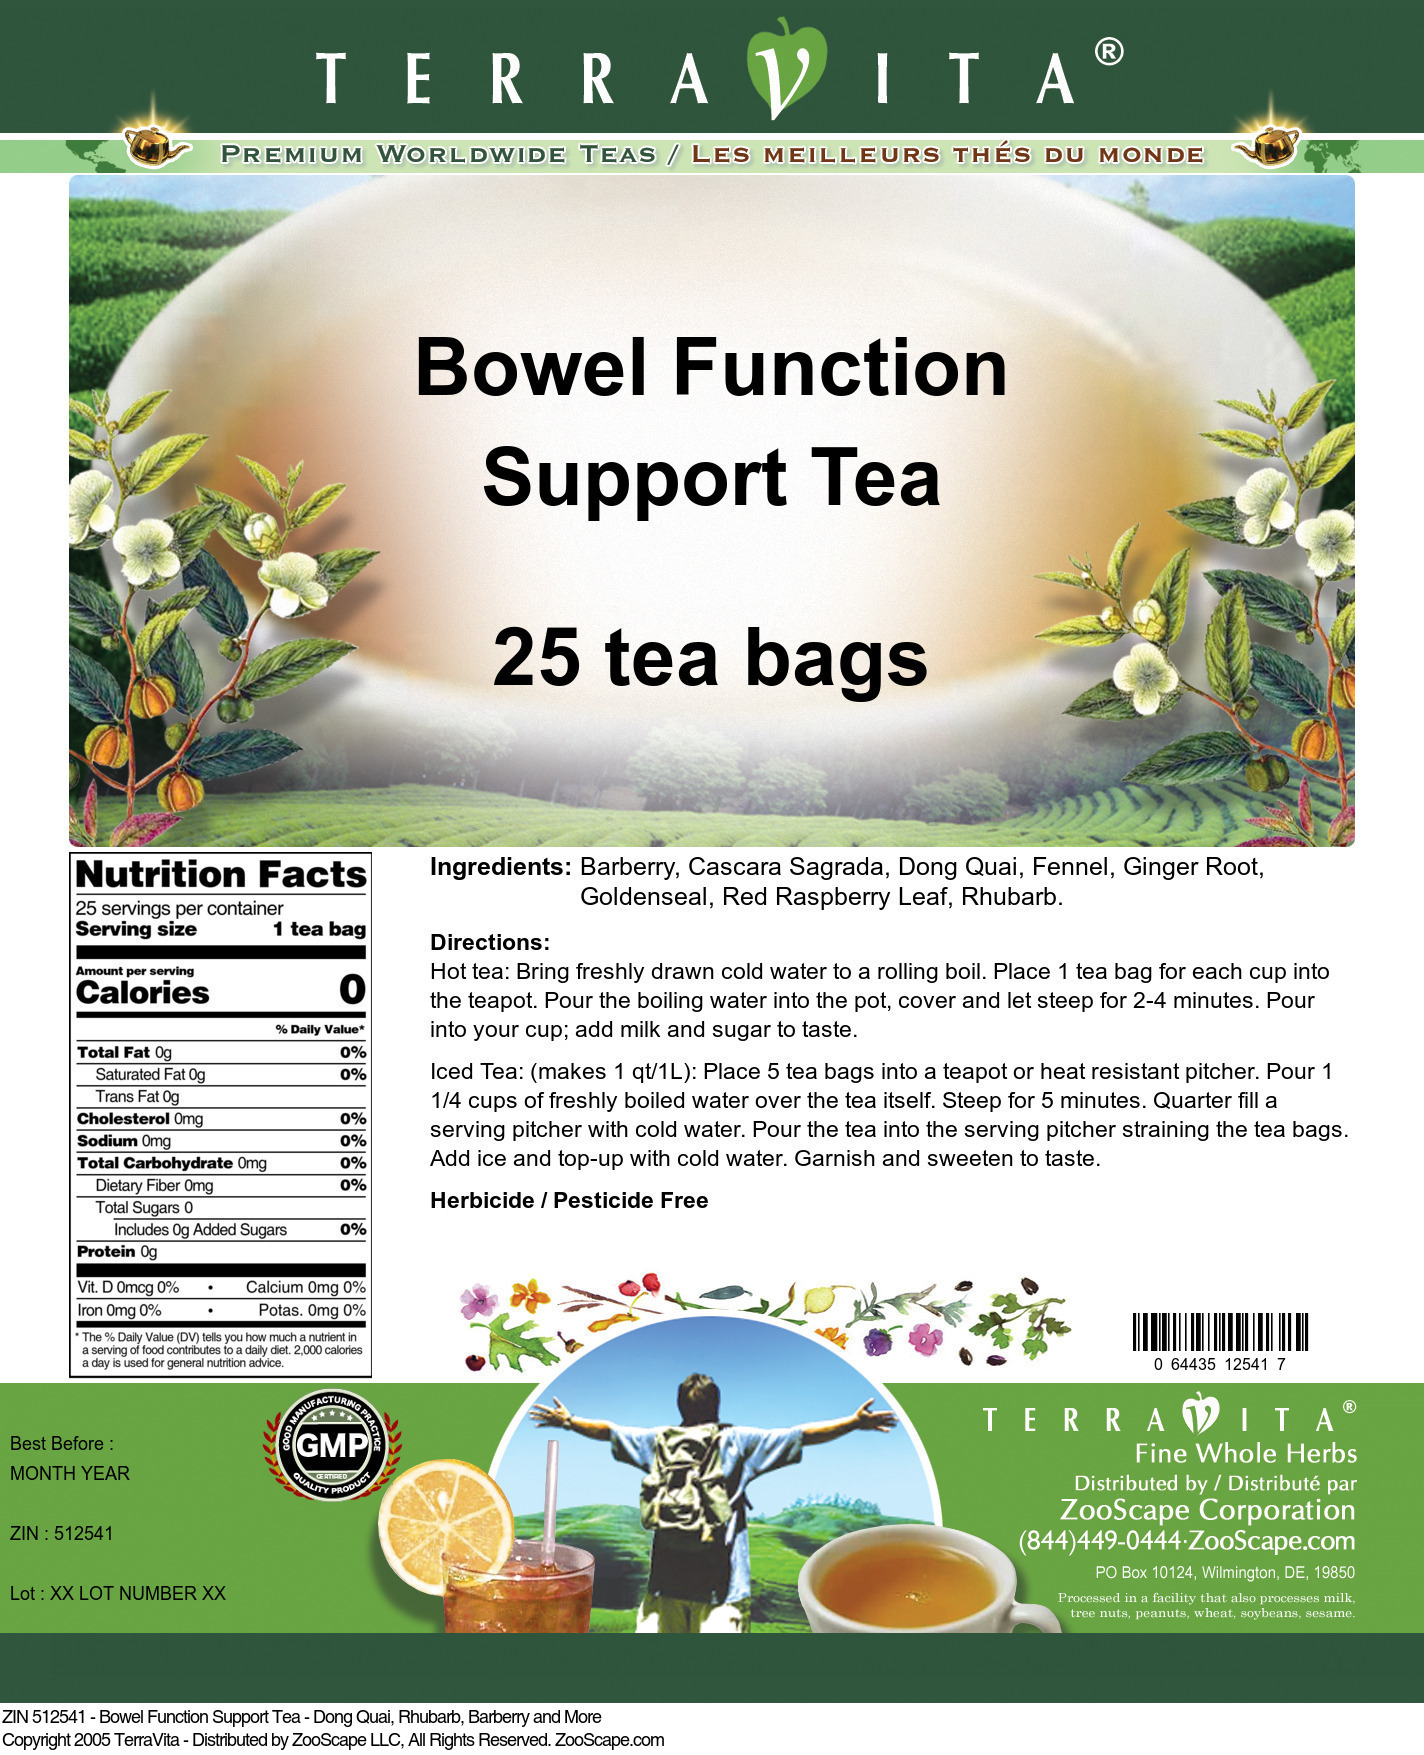 Bowel Function Support Tea - Dong Quai, Rhubarb, Barberry and More